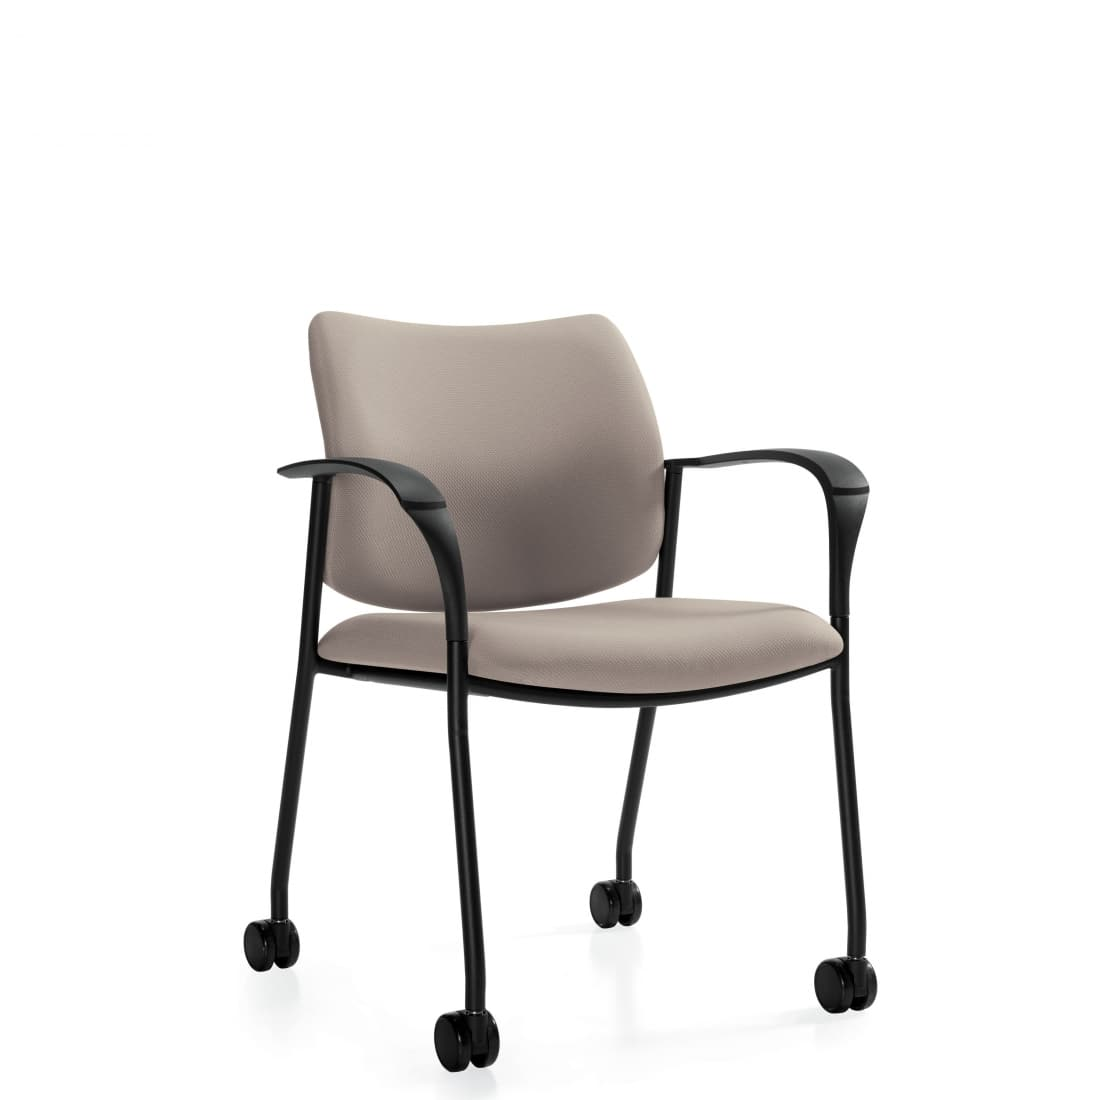 Sidero Multi Purpose Guest Chair